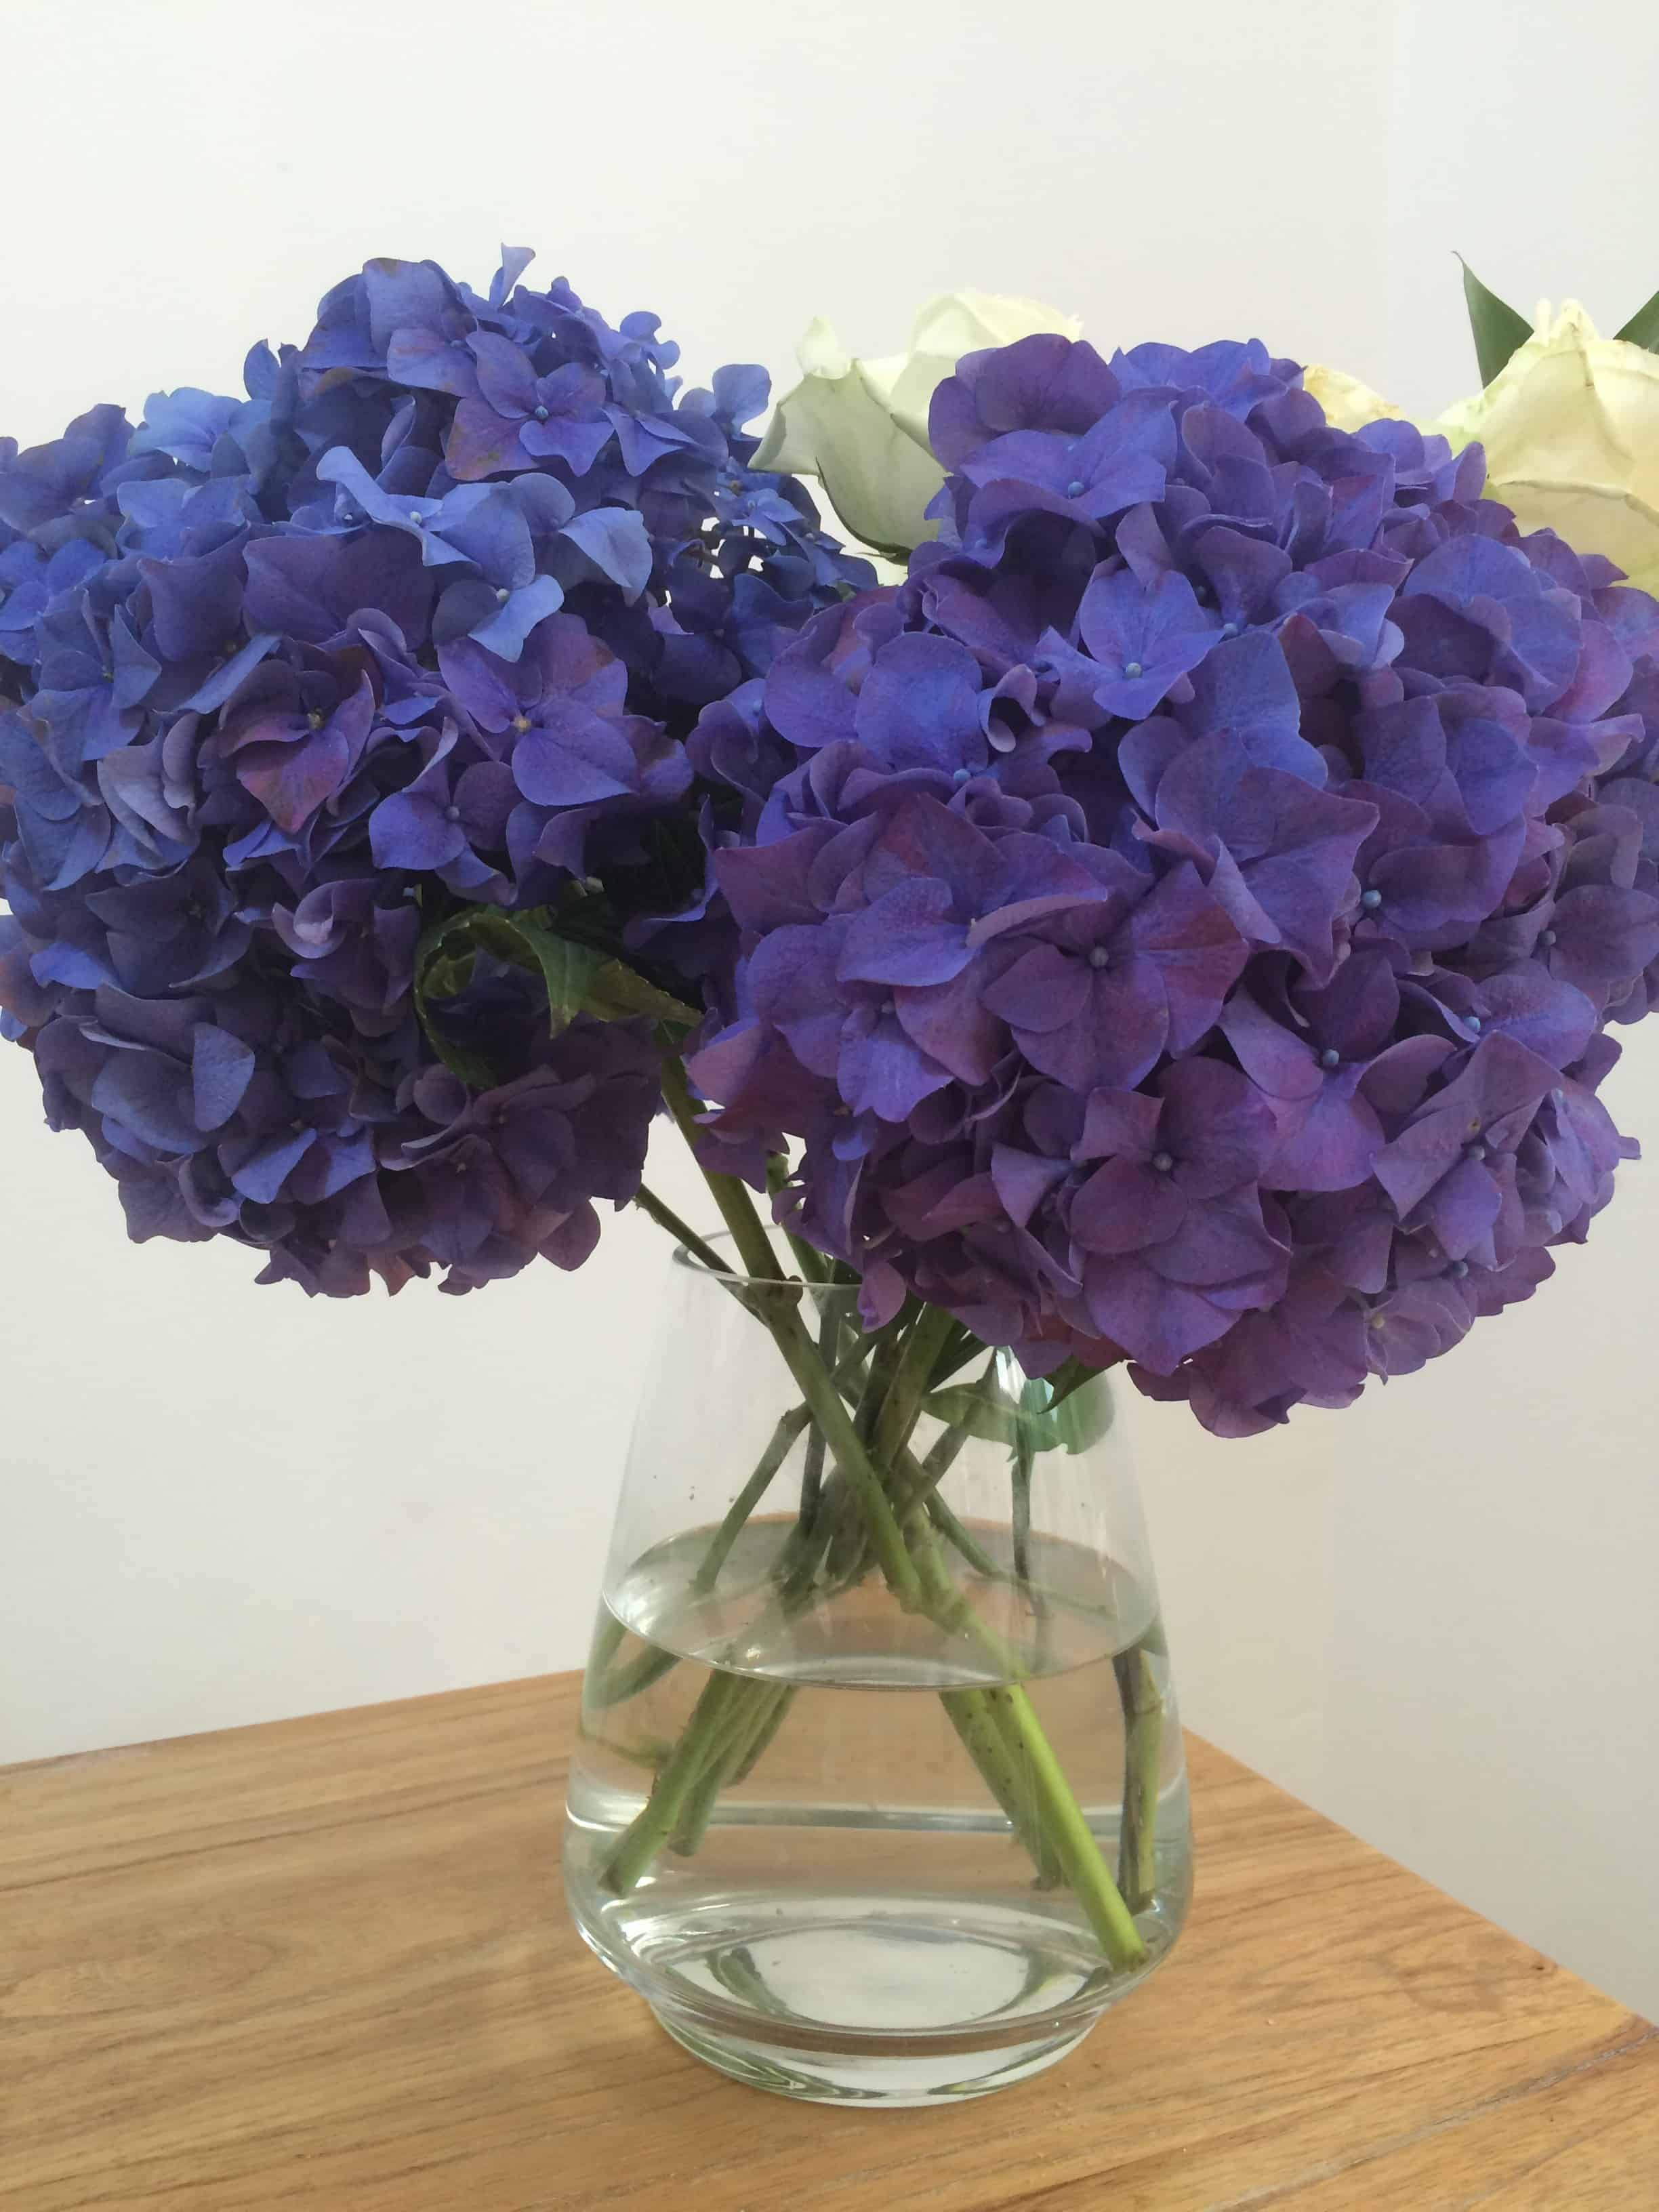 Blossoming Gifts Flowers Review with 33% discount a beautiful space